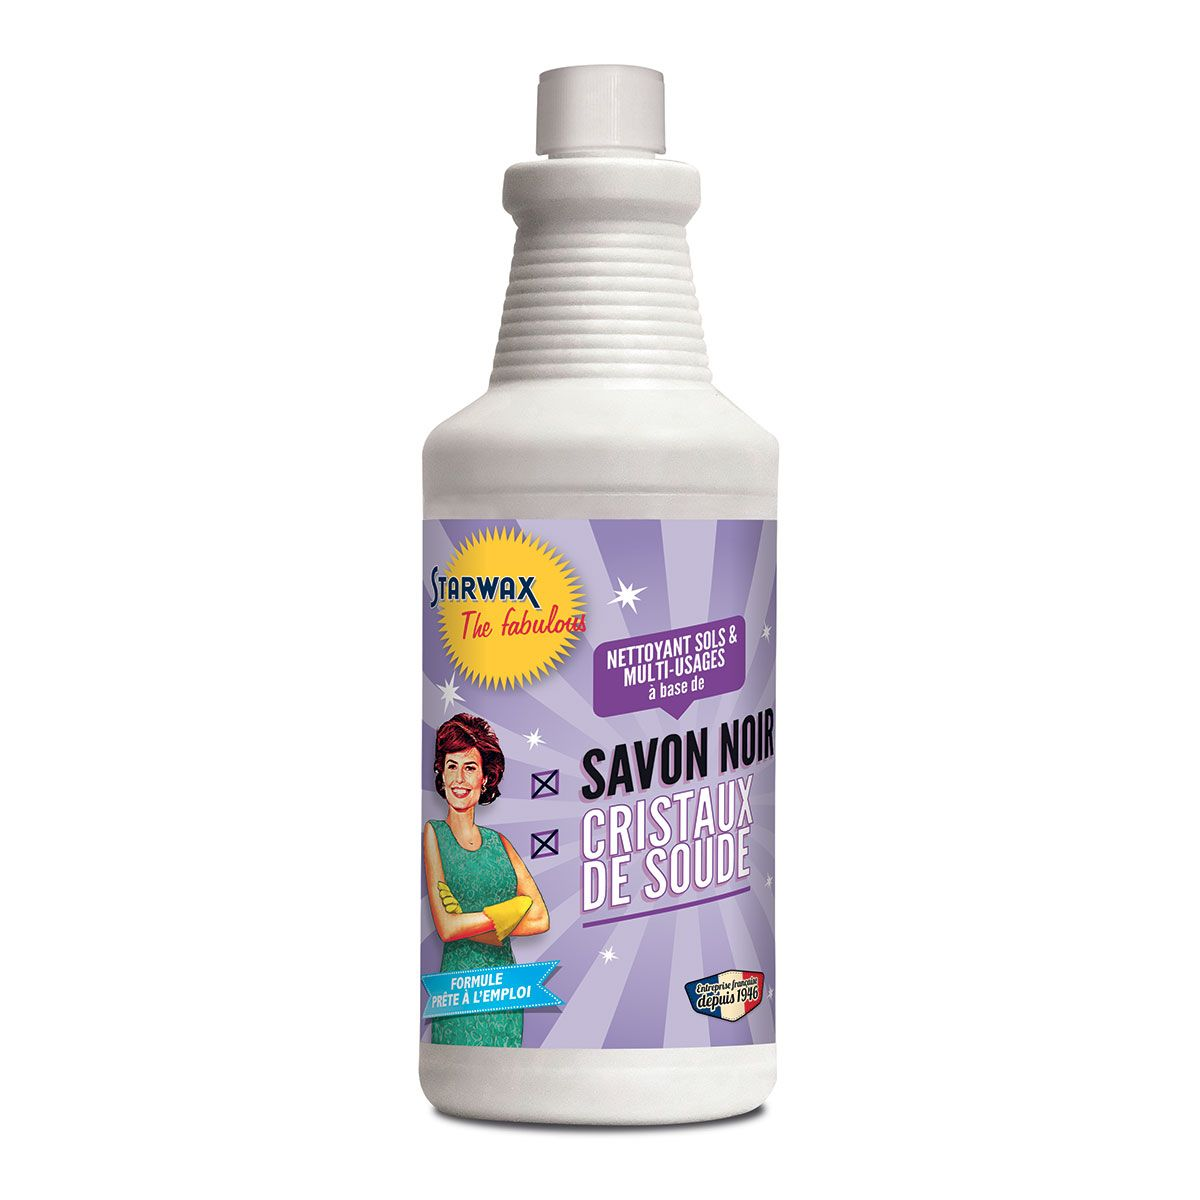 Nettoyant sols multi-usages- Starwax the fabulous